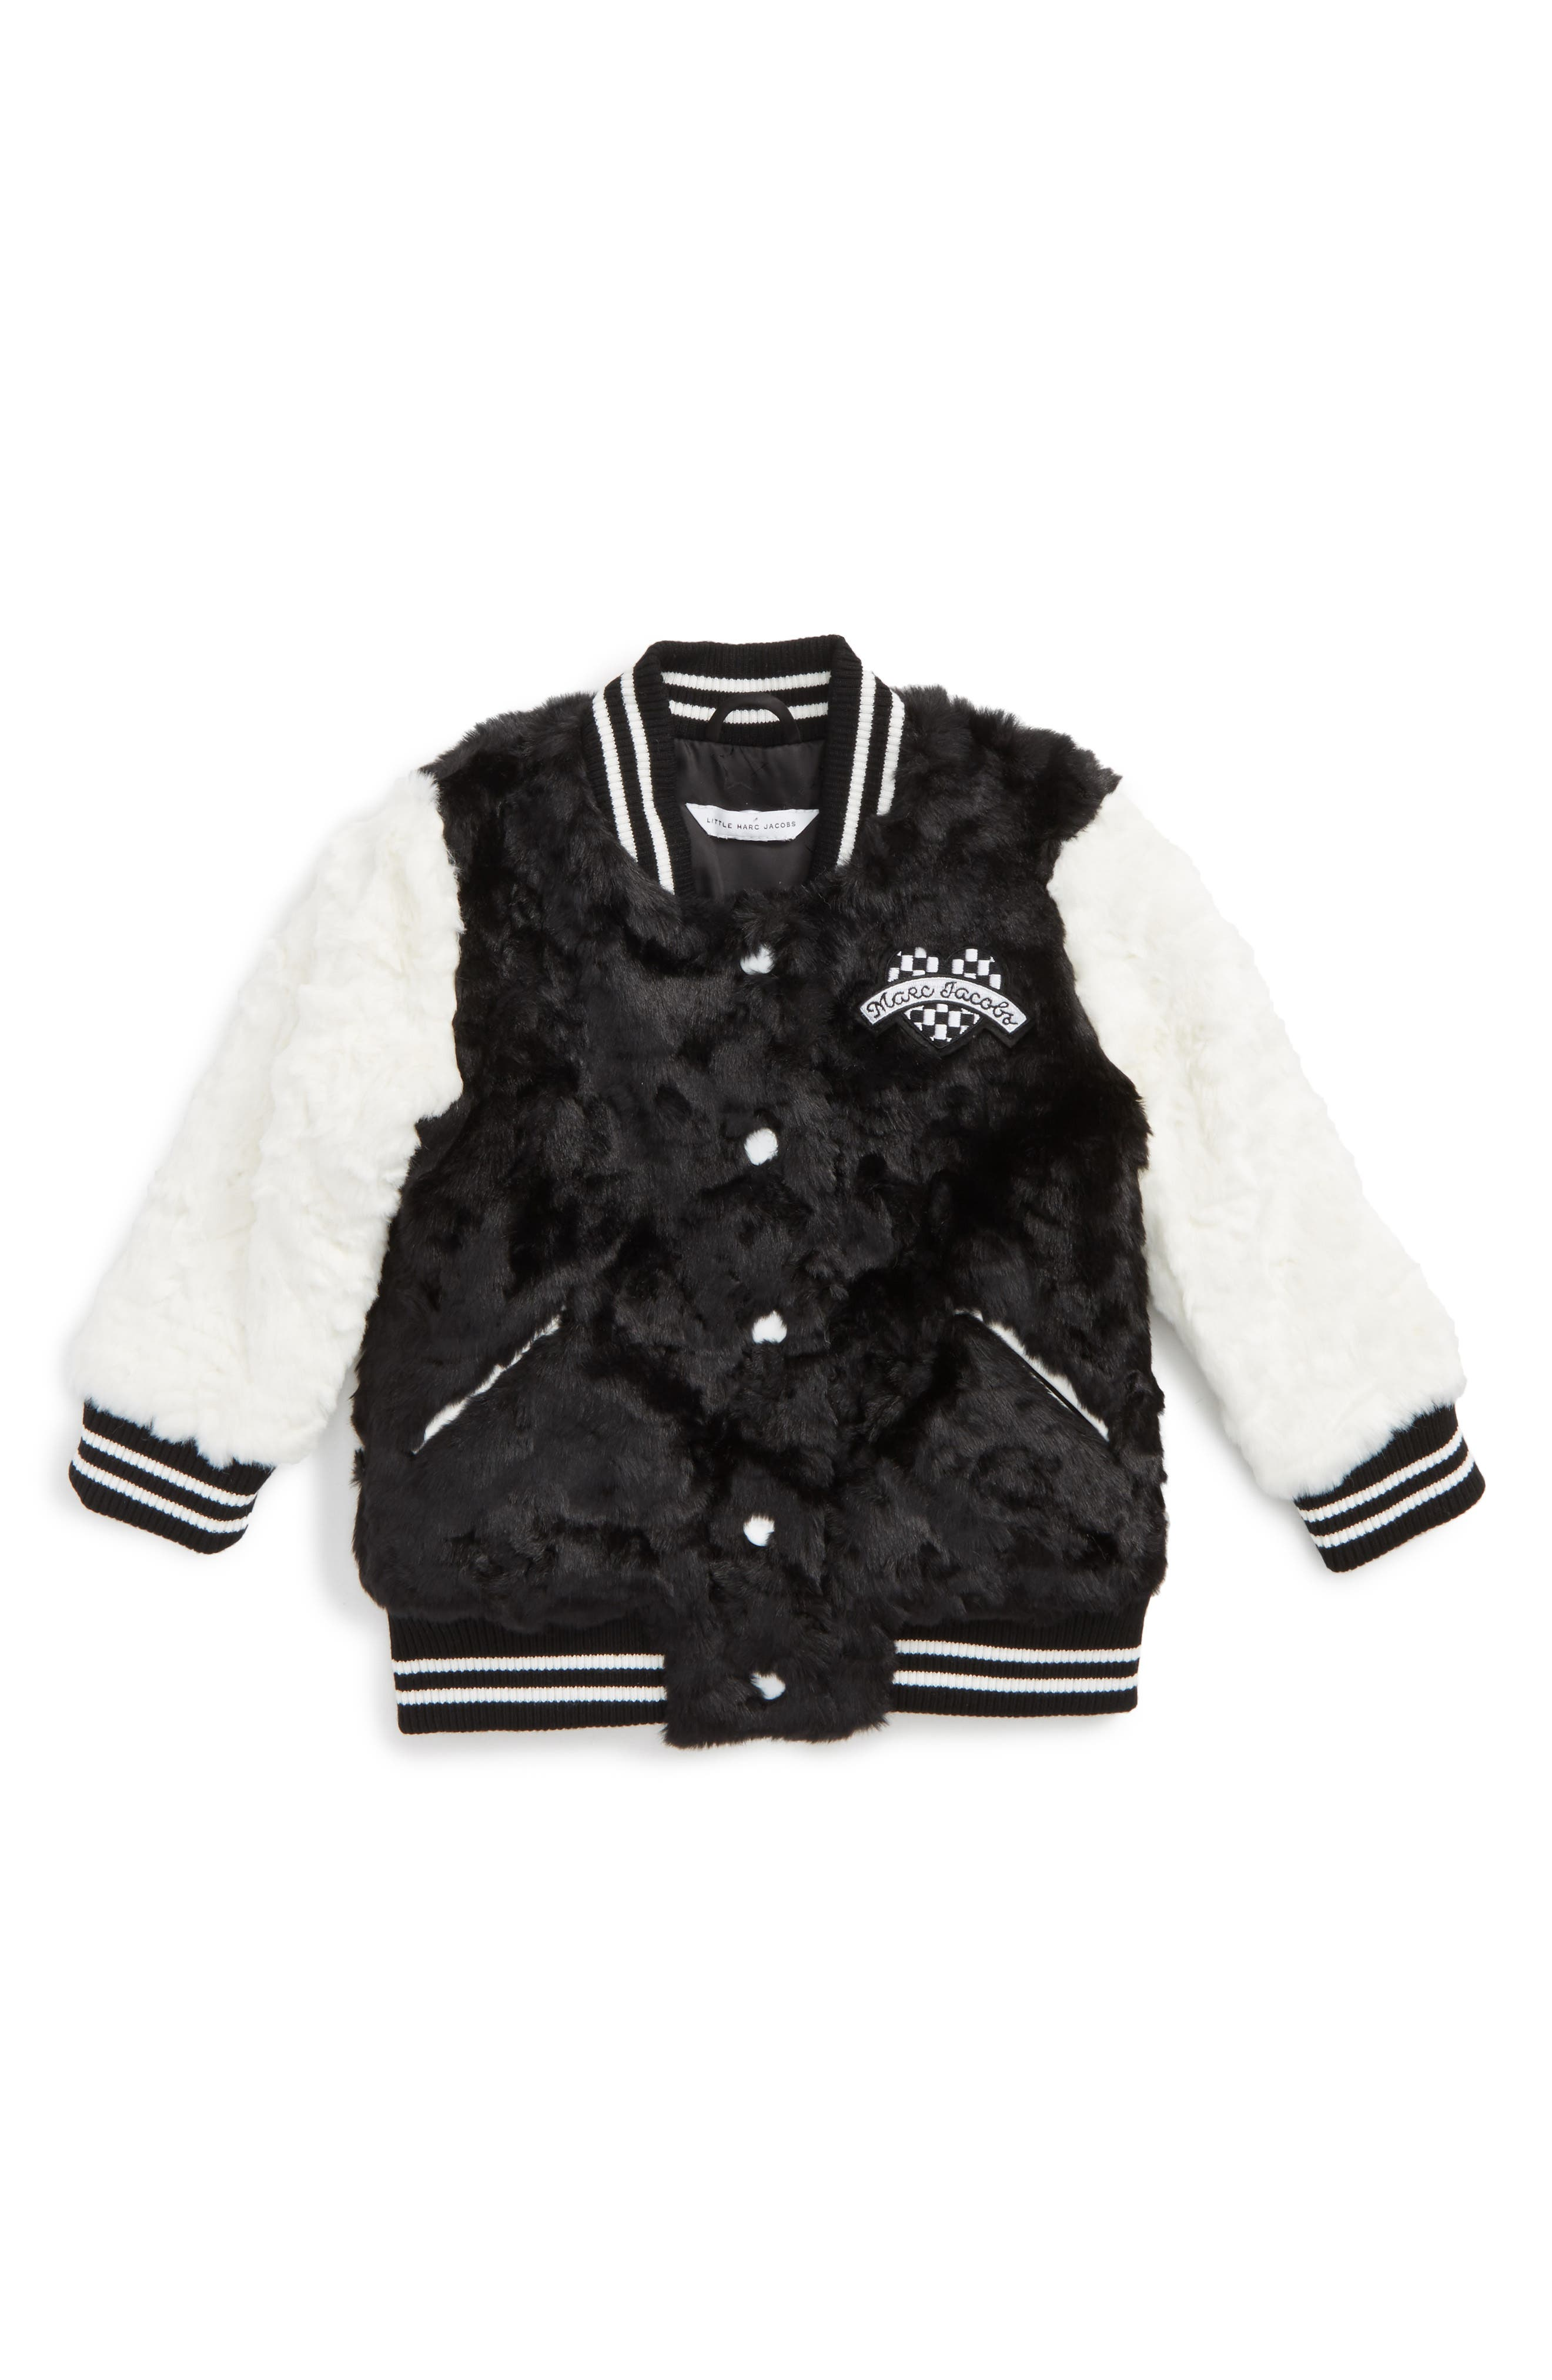 Alternate Image 1 Selected - LITTLE MARC JACOBS Faux Fur Jacket (Toddler Girls, Little Girls & Big Girls)